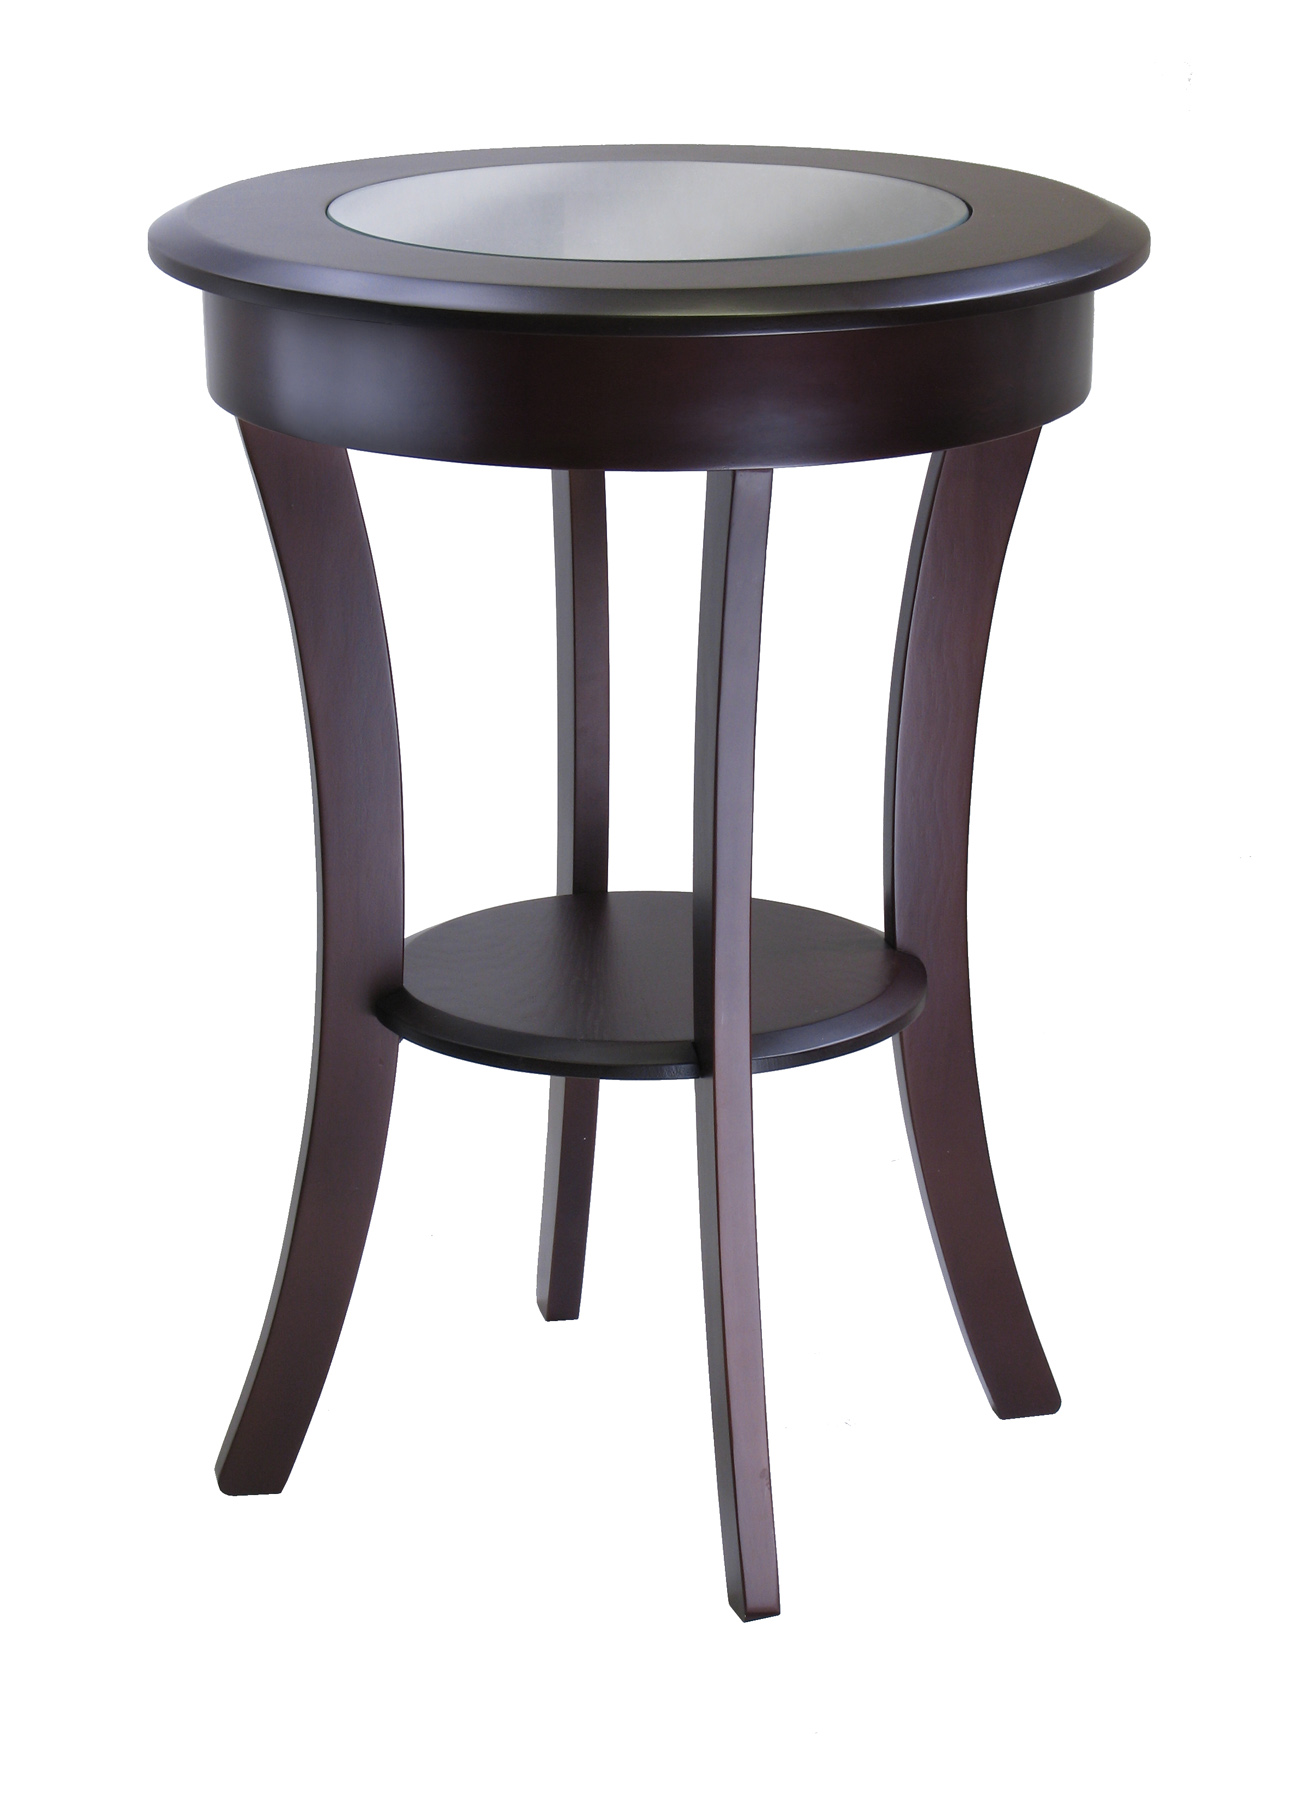 dolphins accent table winsome daniel with drawer black finish cassie round glass chrome end tables whole tablecloths for weddings very slim side orange two nesting monarch hall